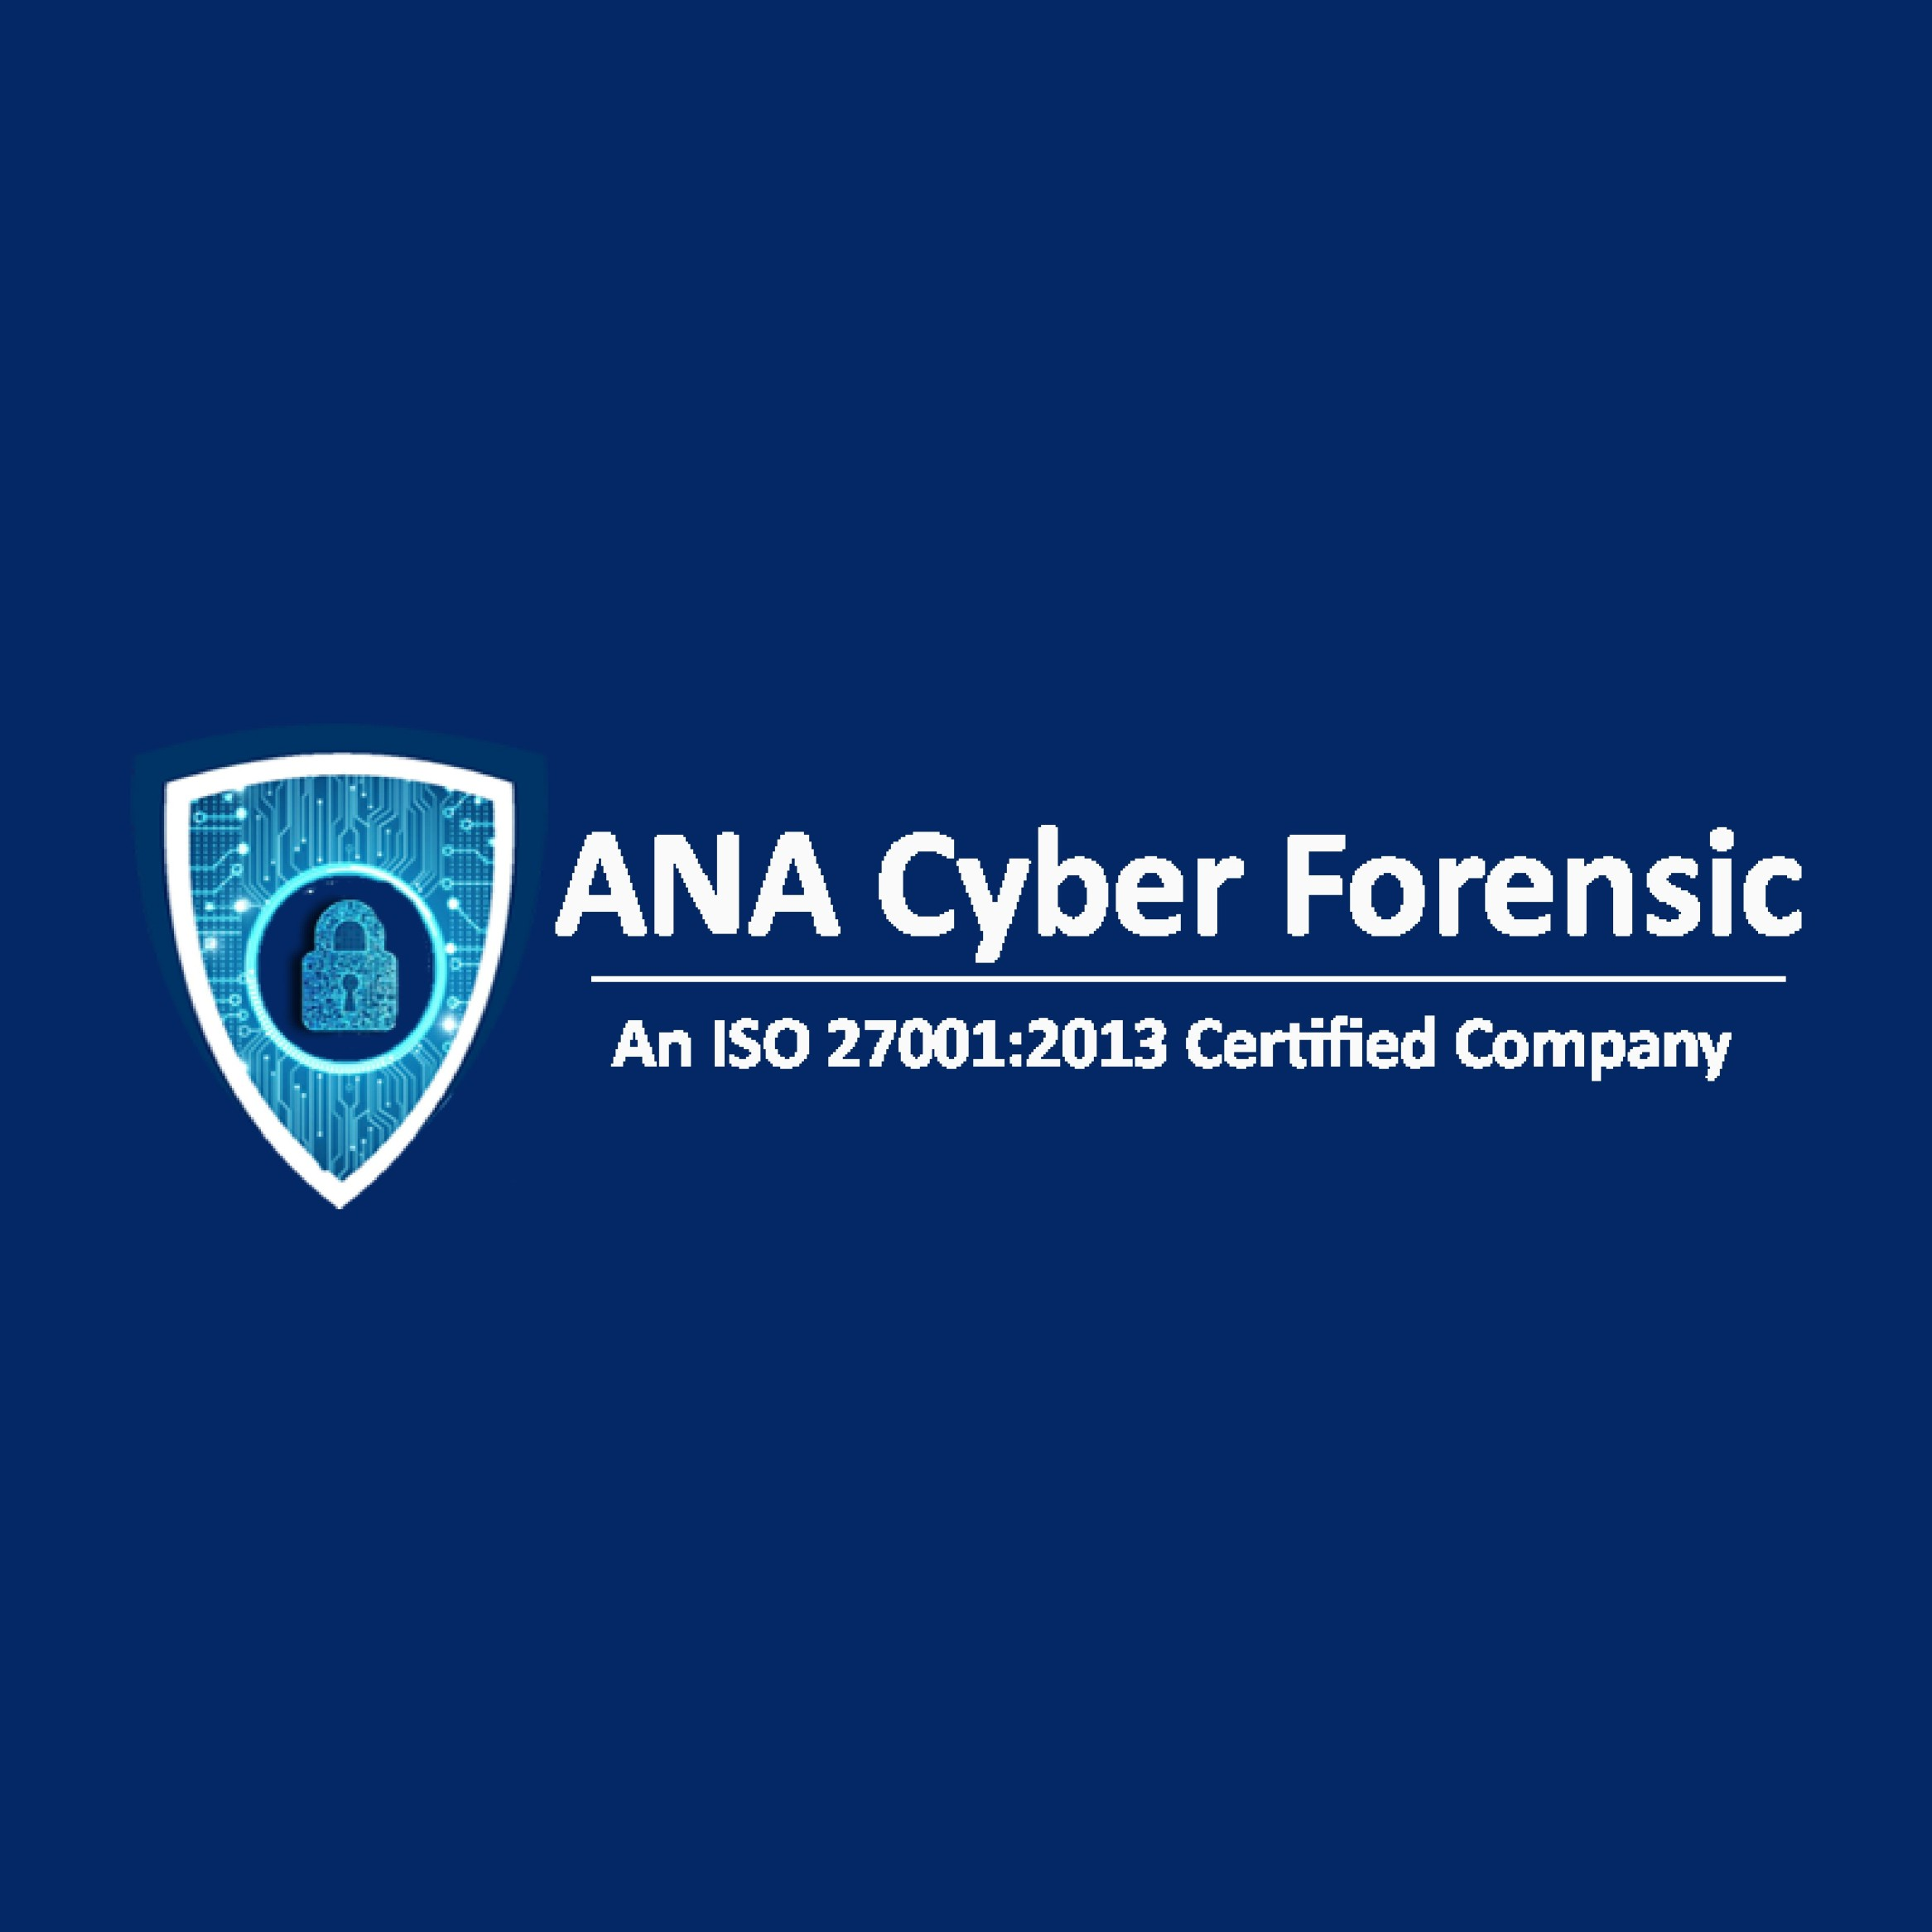 cyber security company in india